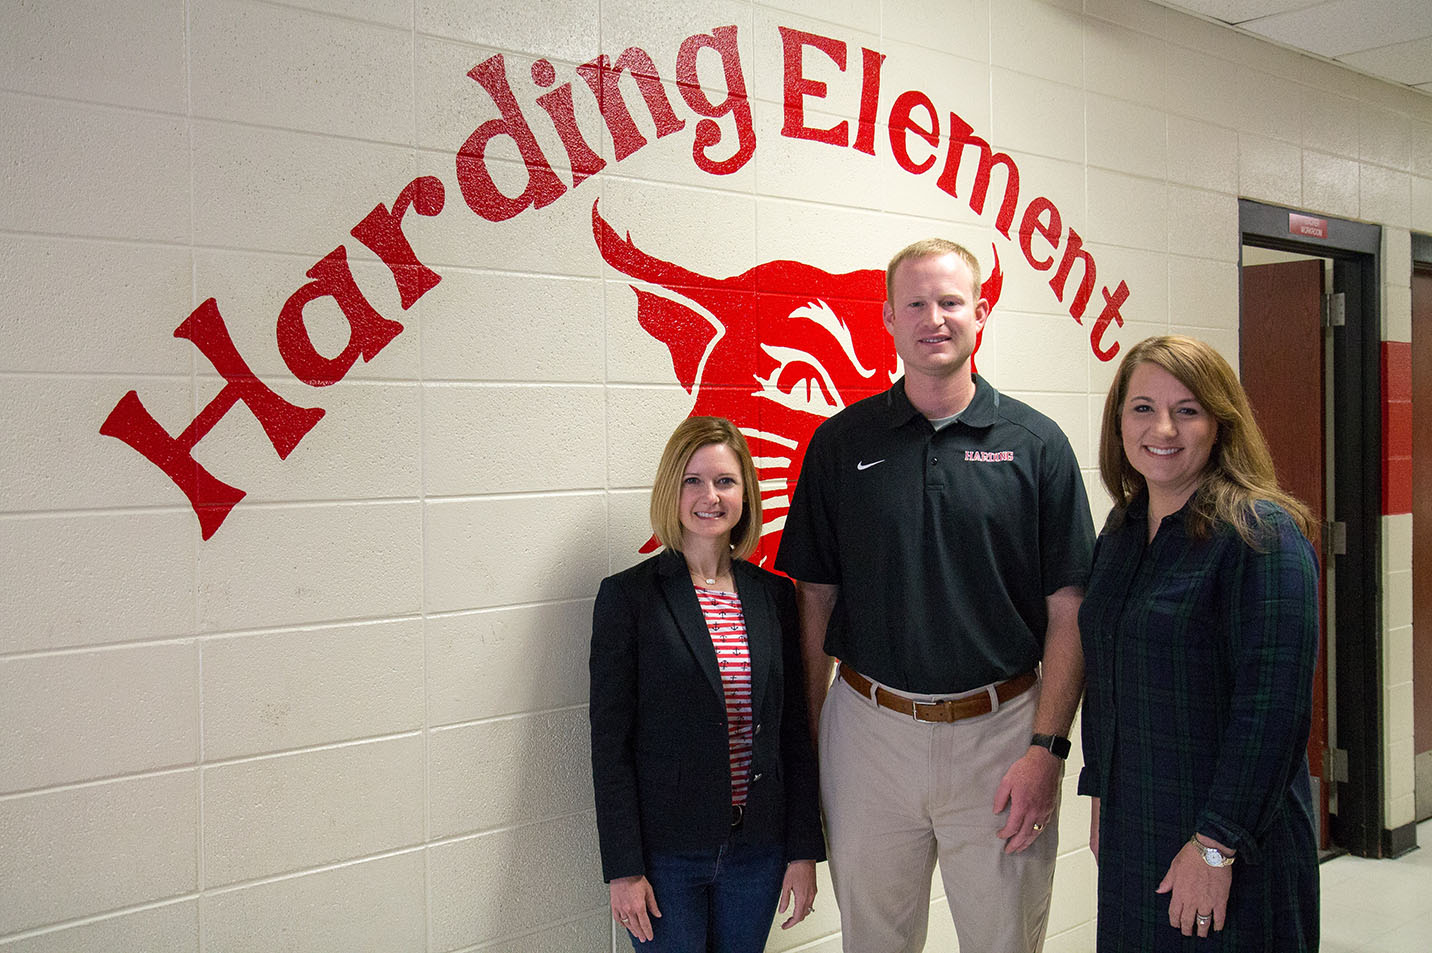 This is a photo of the ASEC team, Melanie Blansett, Kevin Ganus and director Shannon King, and they provide numerous ways to engage students and help them see academic success.